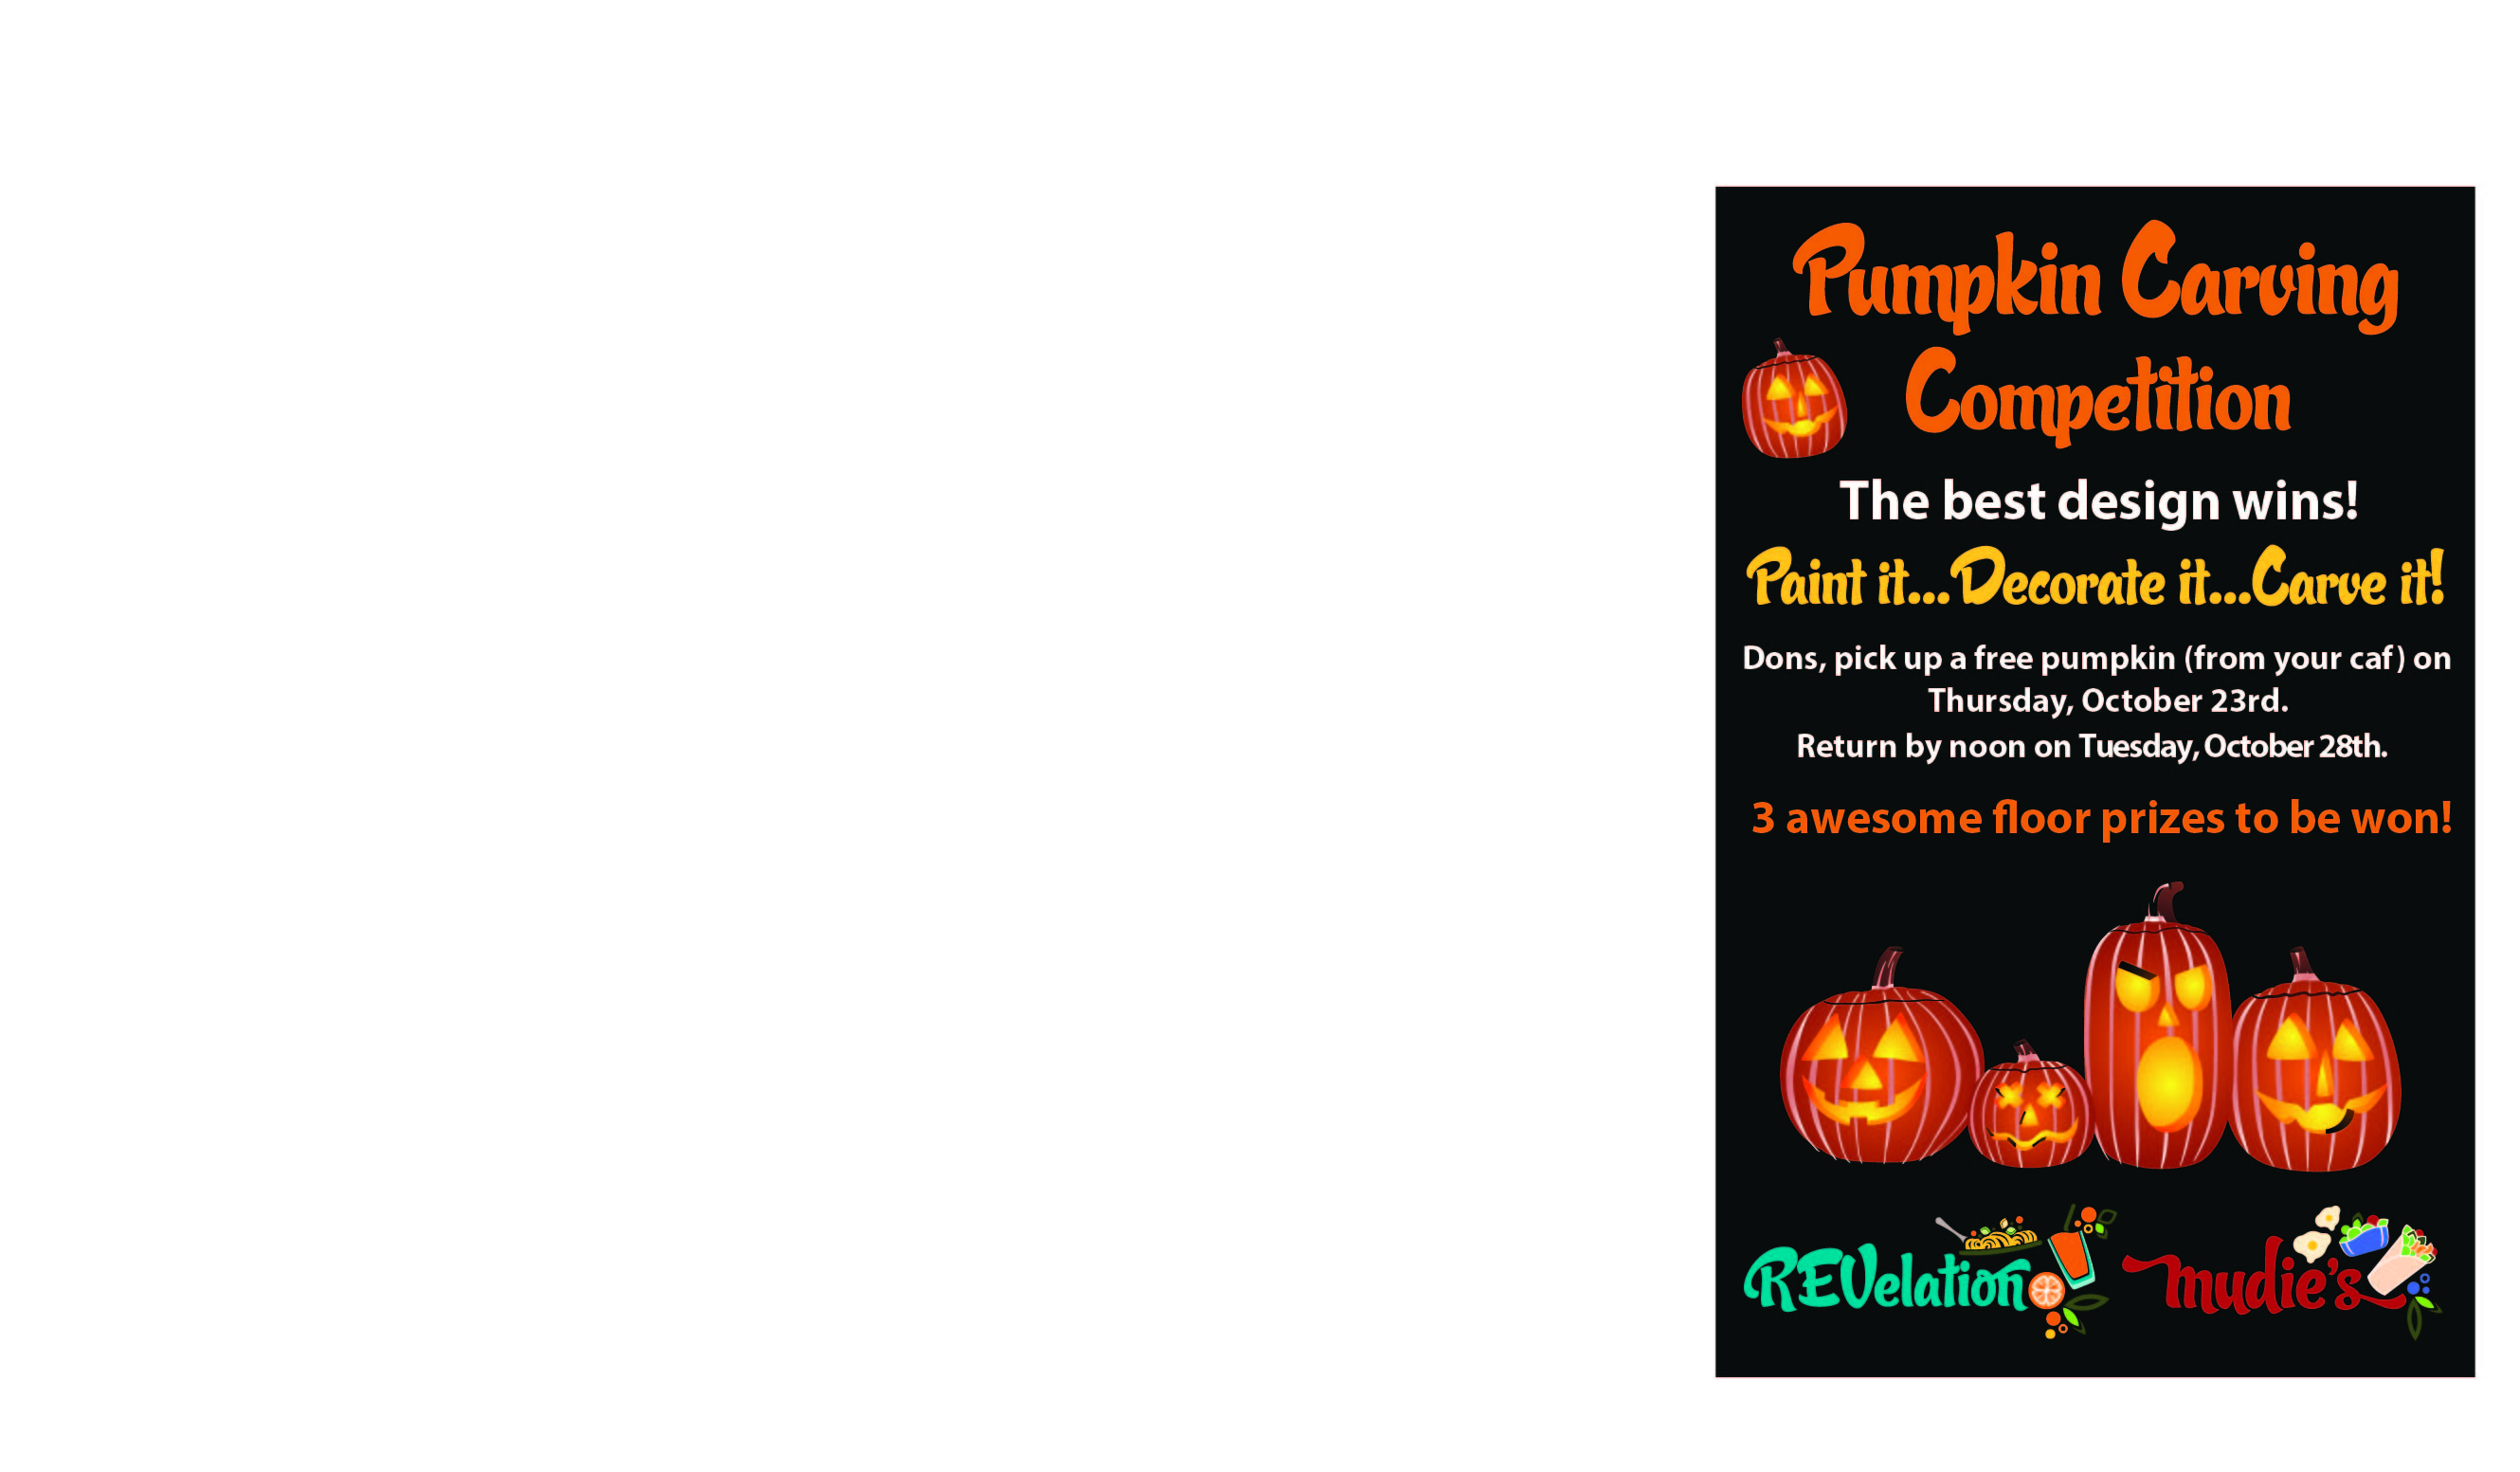 Pumpkin Carving Competition The best design wins! Paint it.. Decorate it... Carve it.. Dons, pick up a free pumpkin